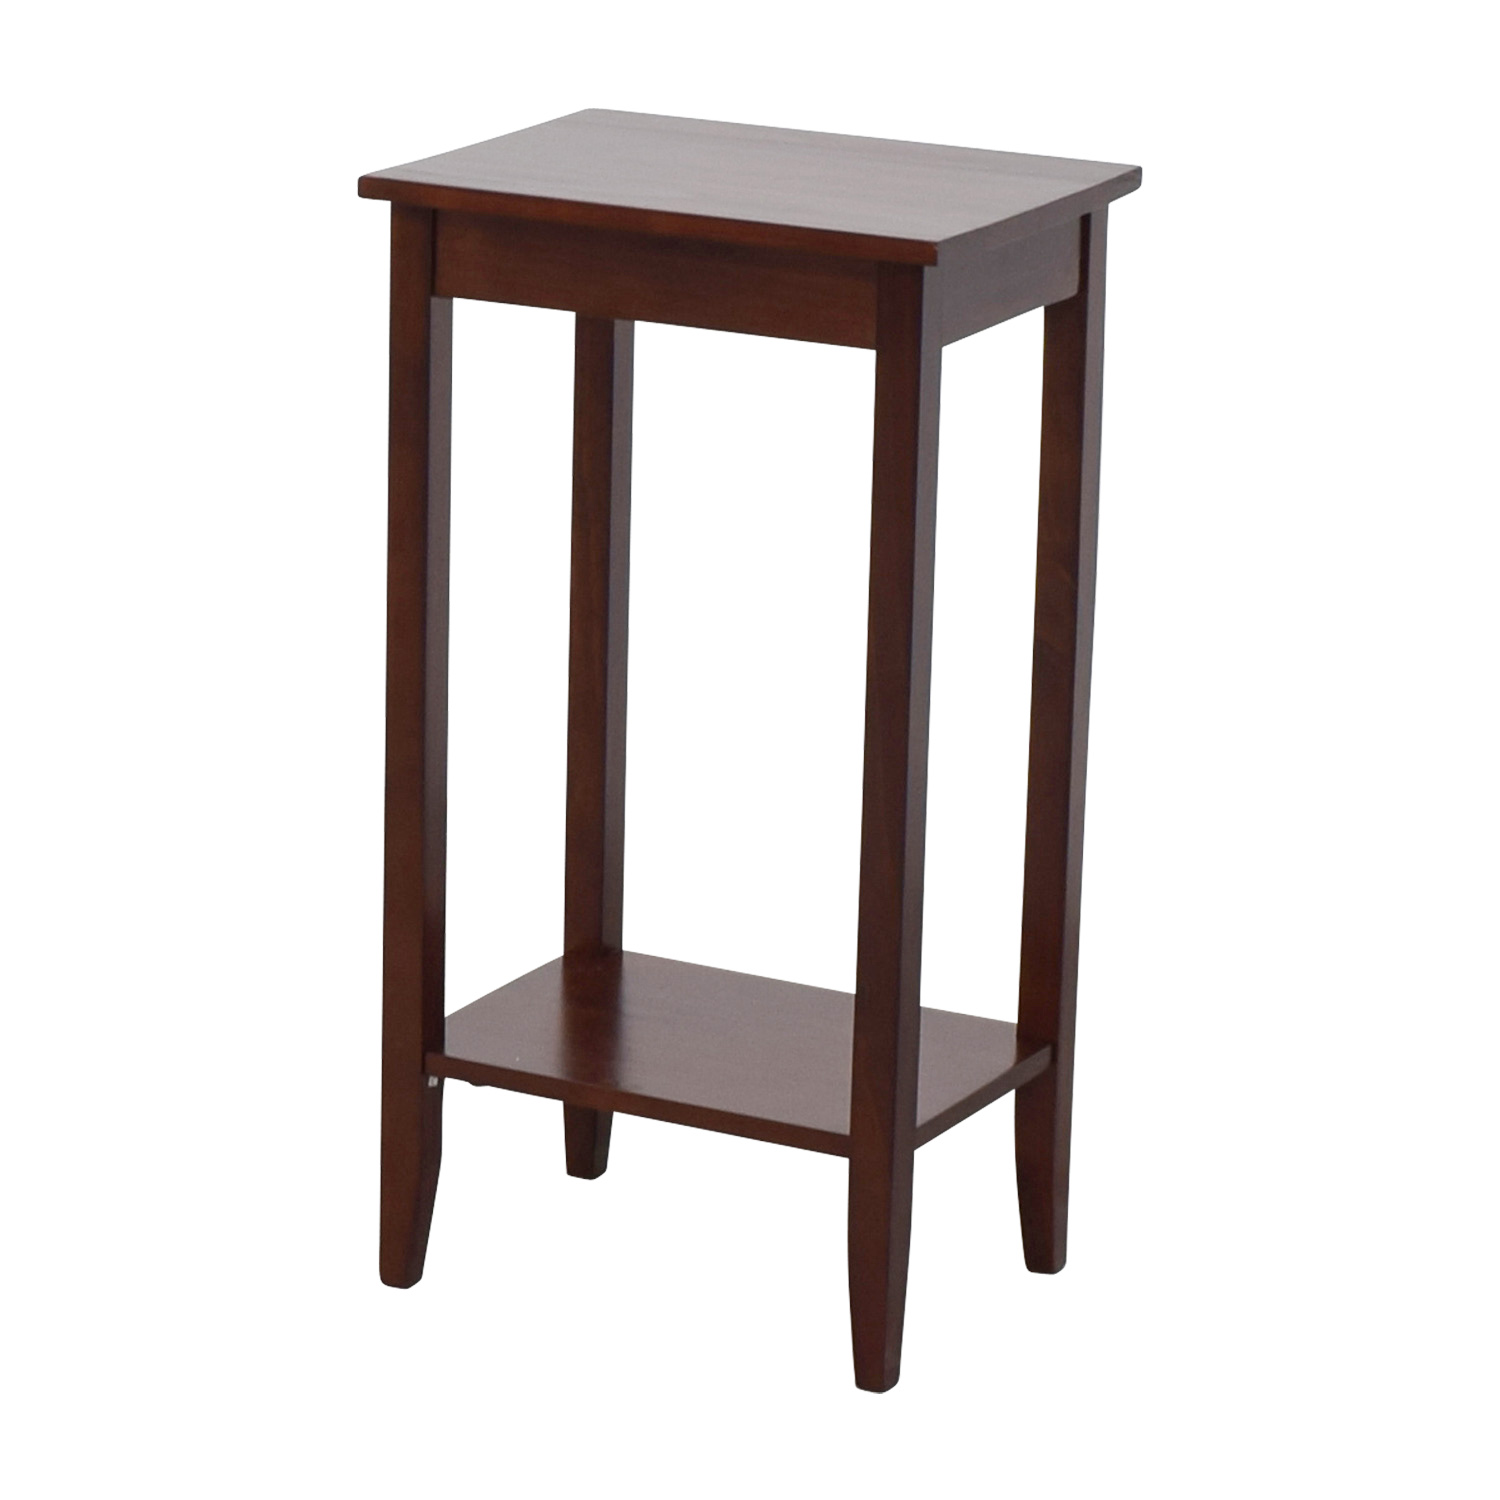 62 Off Tall Narrow Side Table Tables